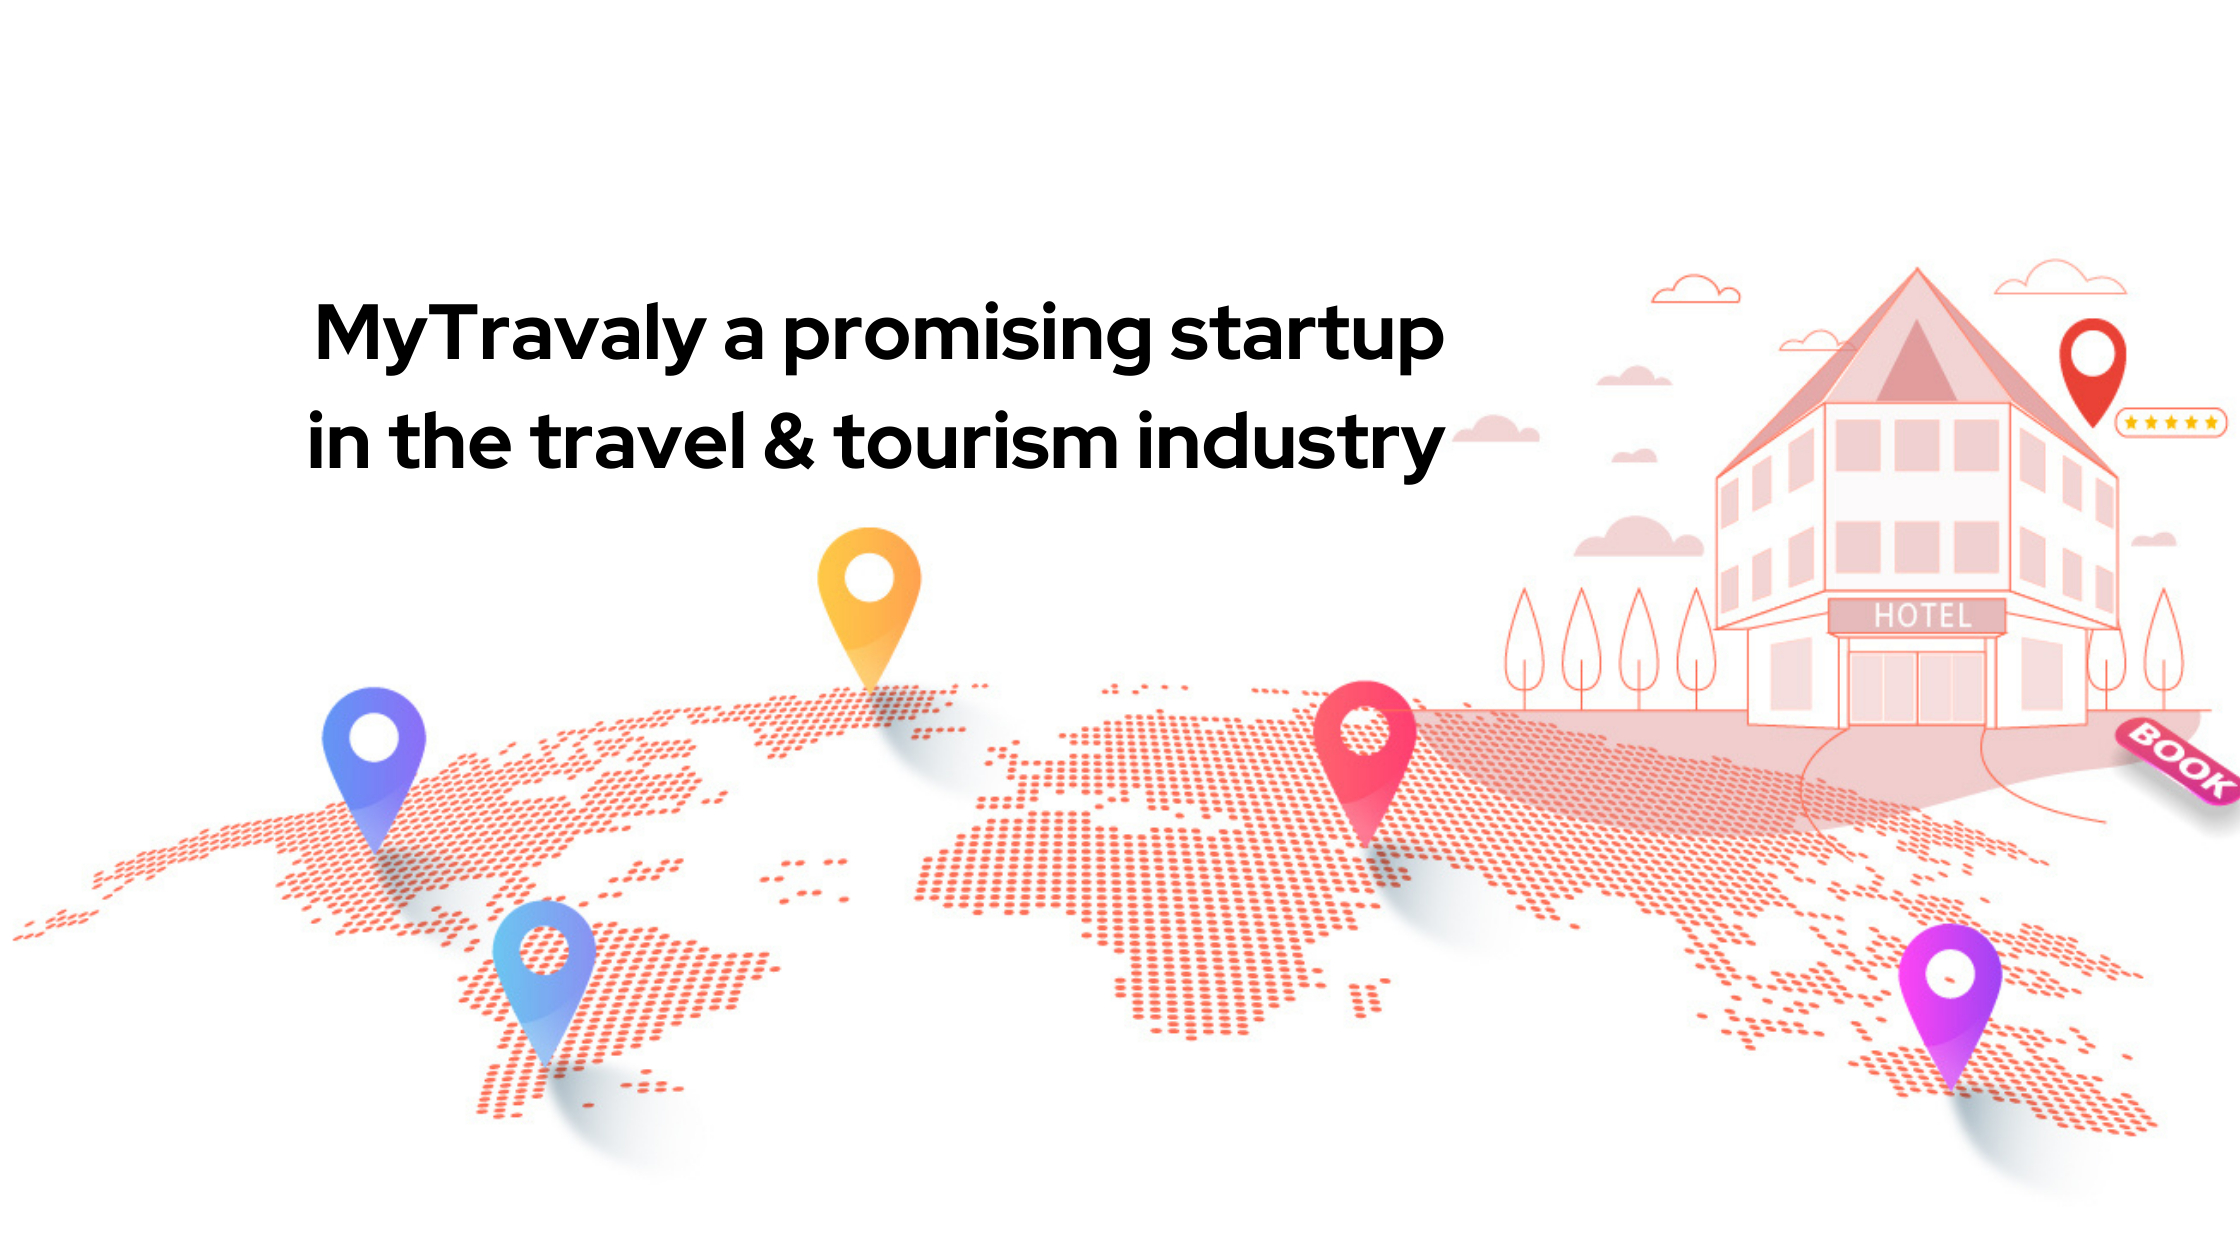 A promising startup in the travel & tourism industry